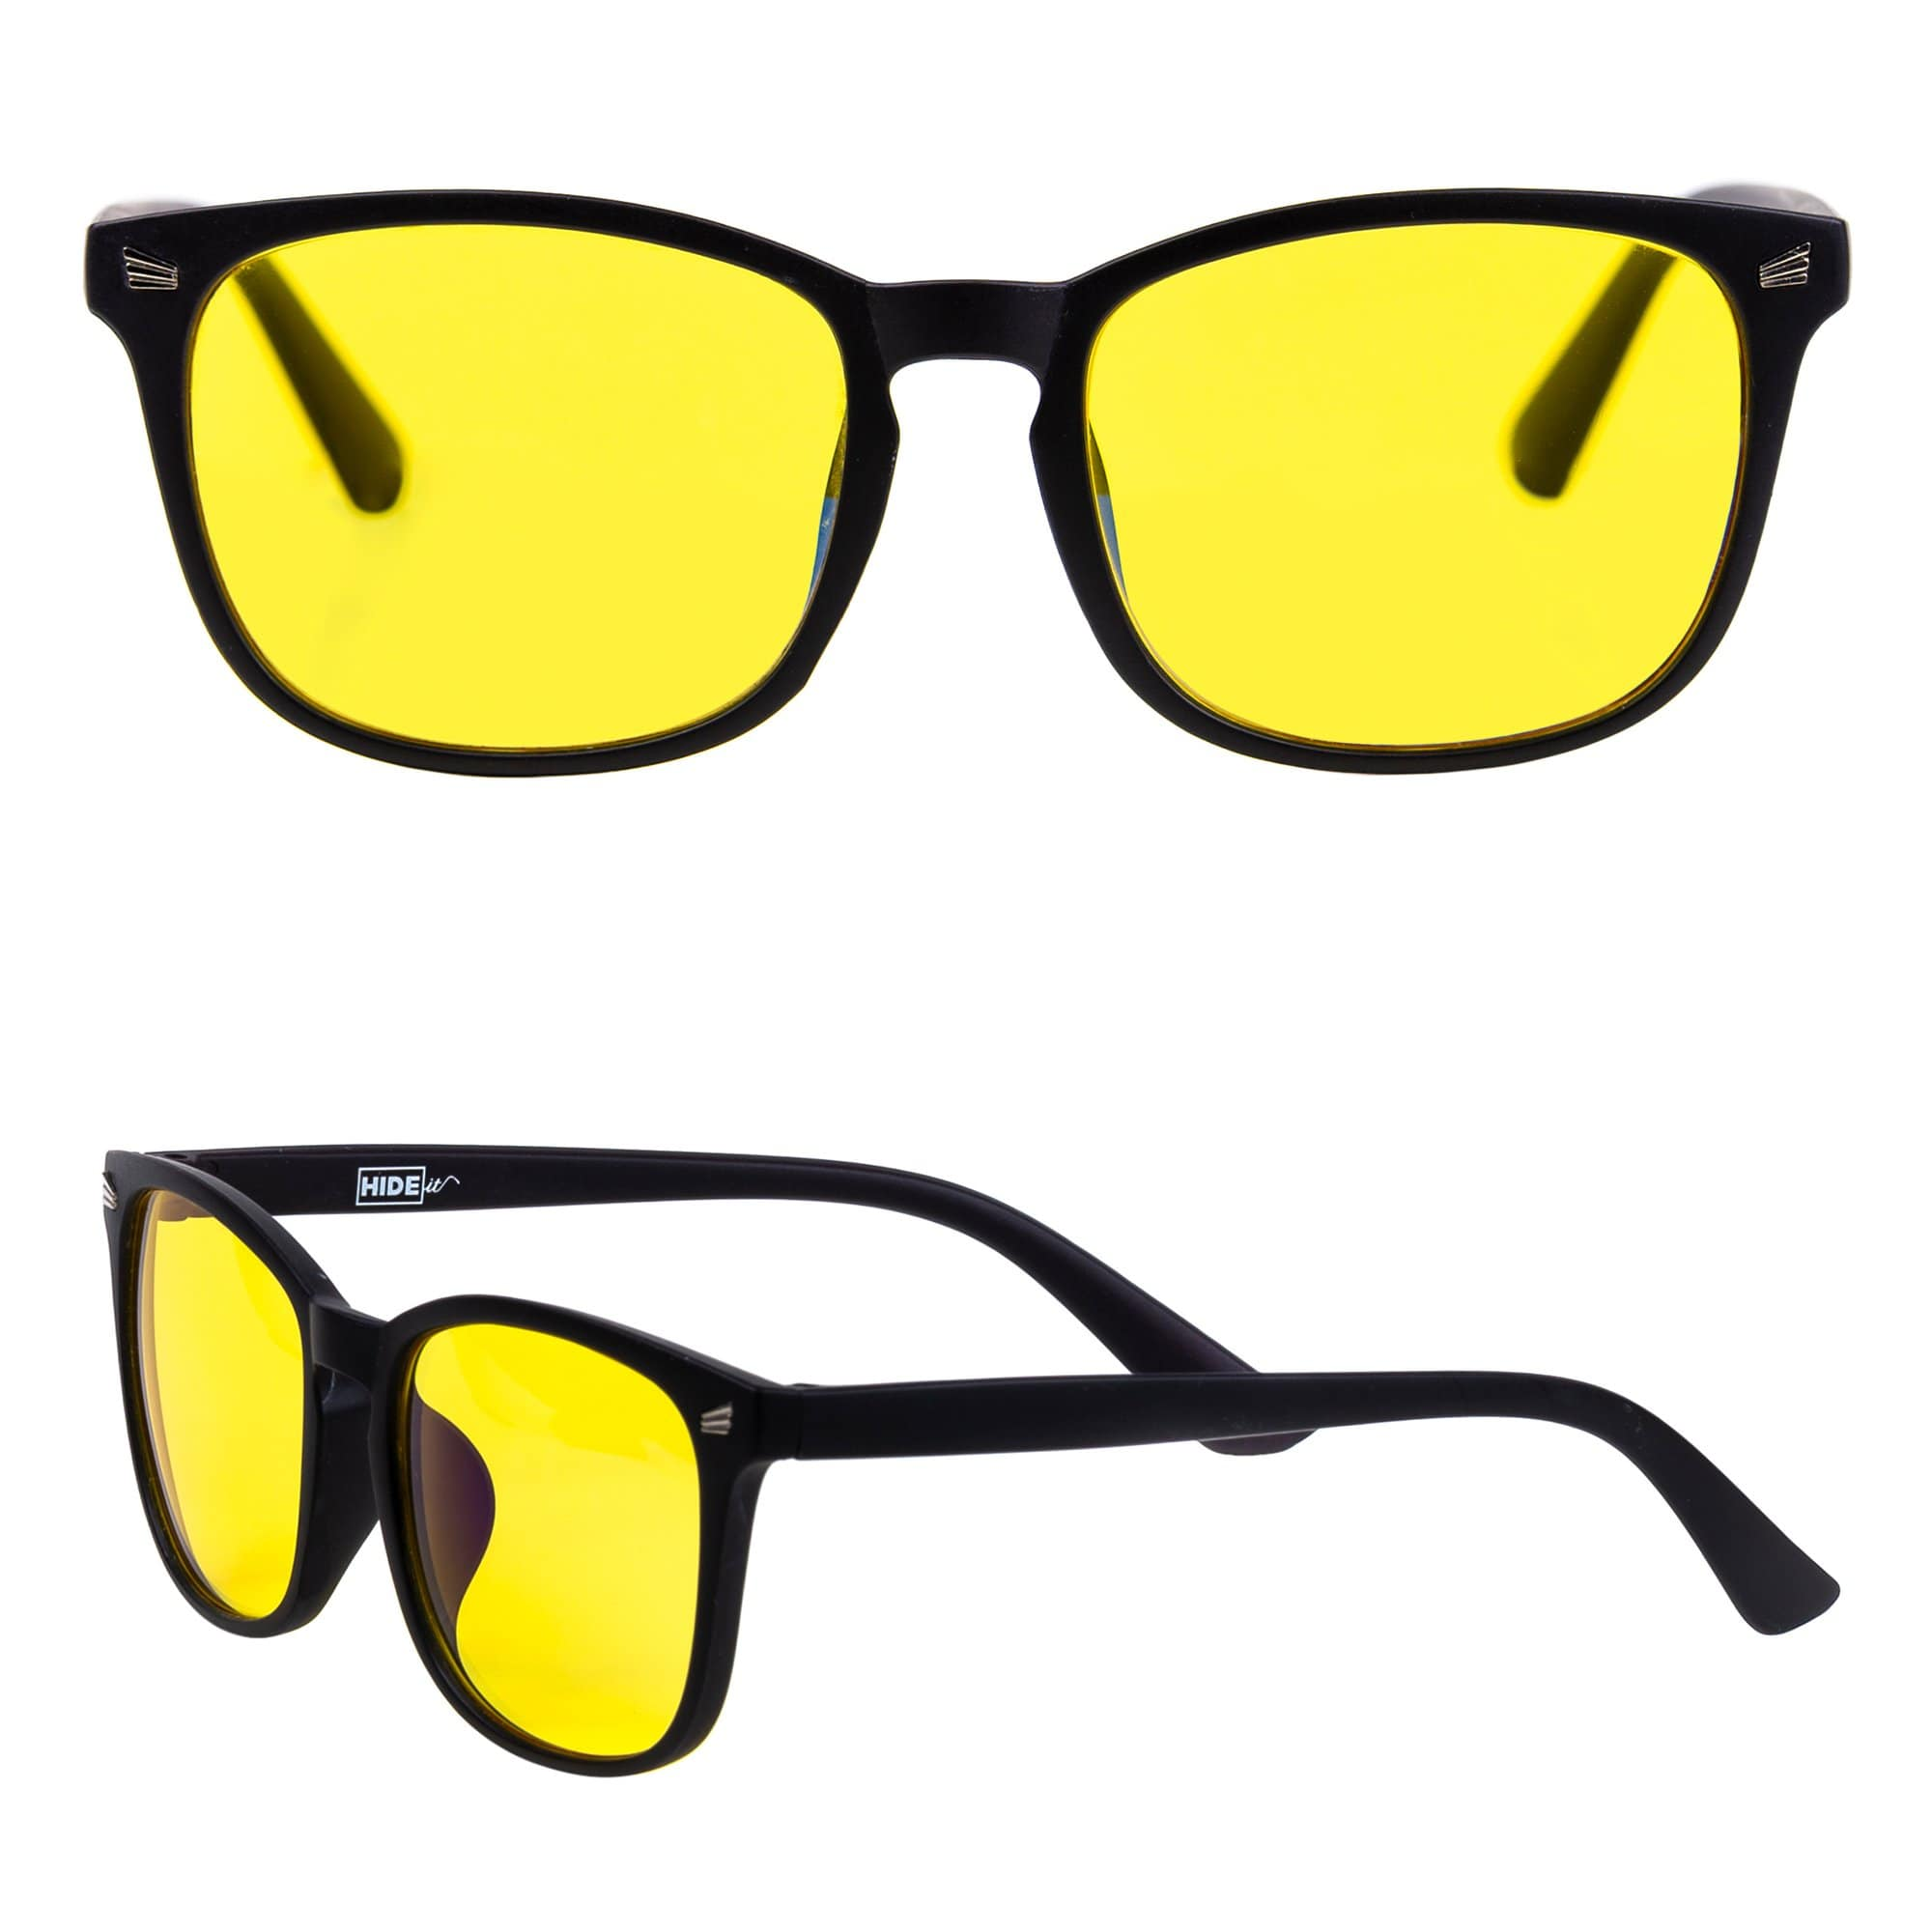 Matte black gaming glasses with yellow lenses to block up to 79% of blue light.